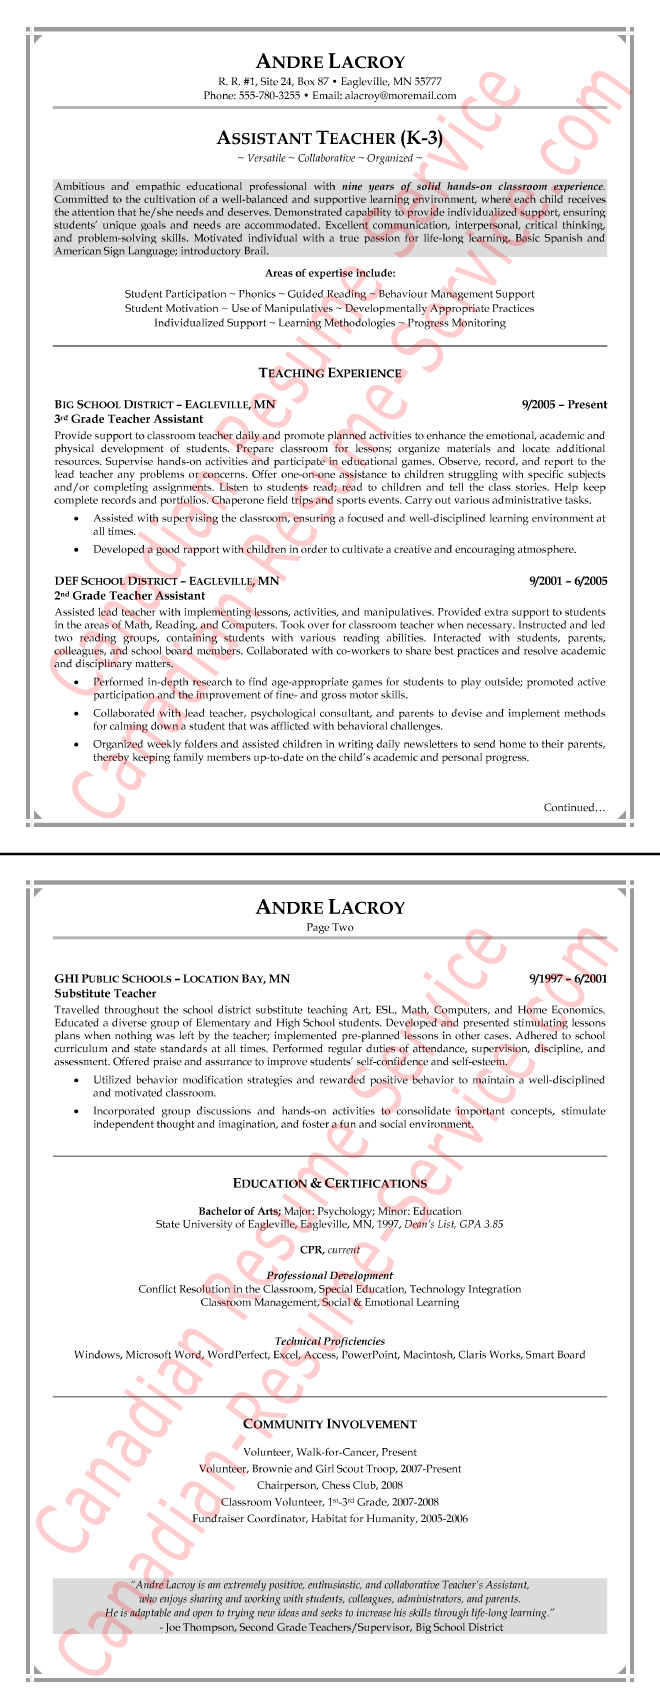 This Teaching Assistant Resume Example Goes With The Teacher Aid